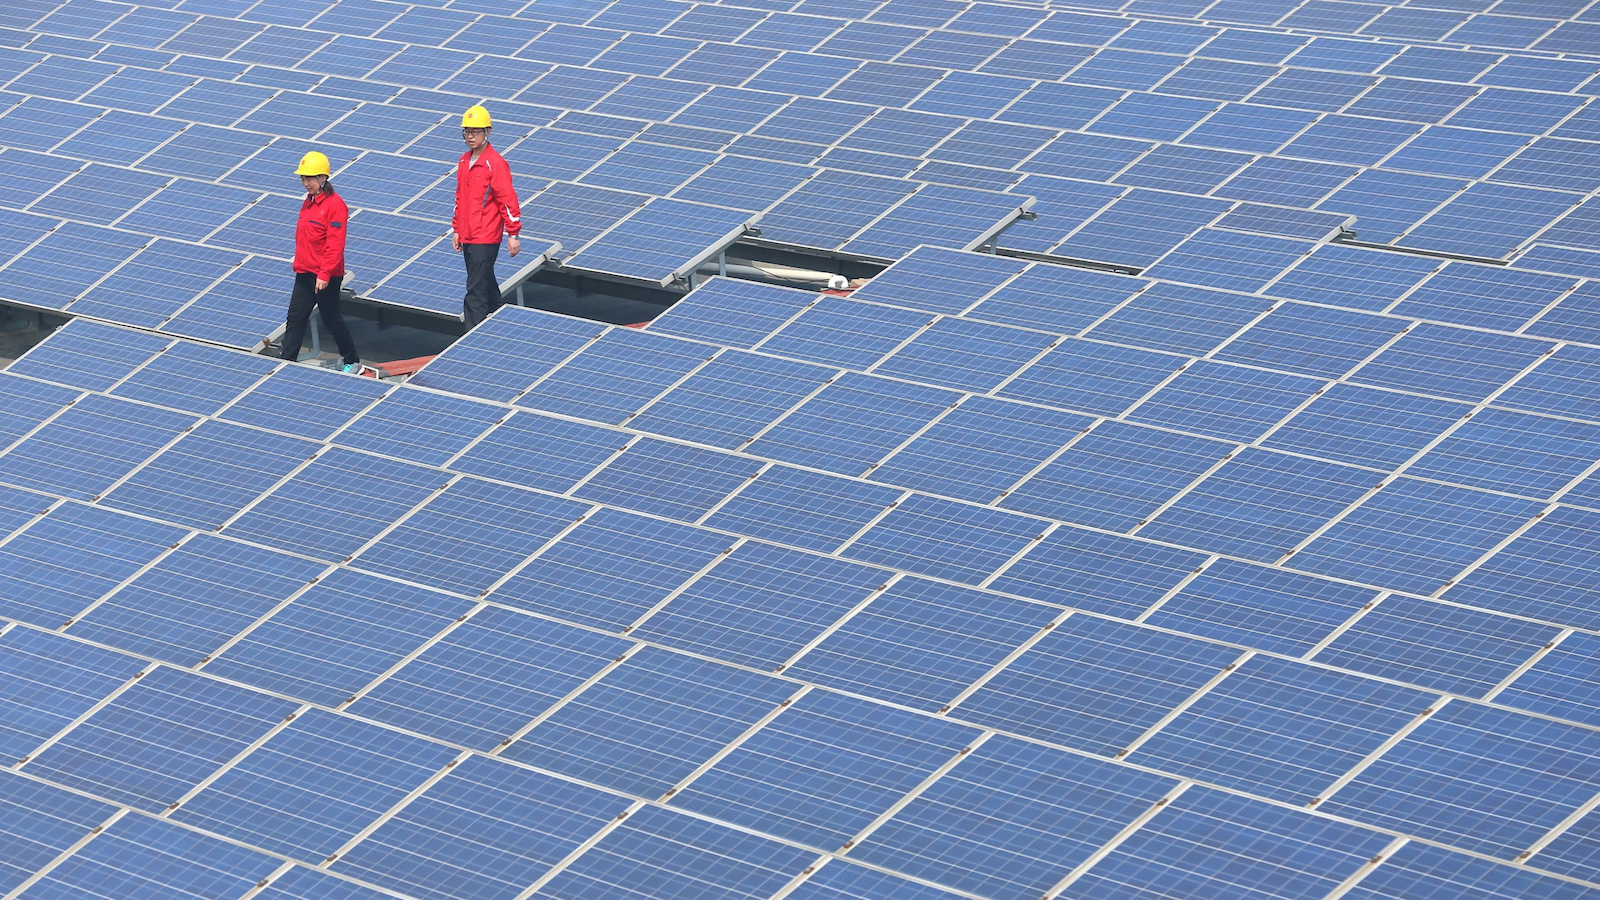 Workers walk past solar panels in Jimo, Shandong Province, China, April 21, 2016. China Daily/via REUTERS ATTENTION EDITORS - THIS IMAGE WAS PROVIDED BY A THIRD PARTY. EDITORIAL USE ONLY. CHINA OUT. NO COMMERCIAL OR EDITORIAL SALES IN CHINA - RTX2AYMN